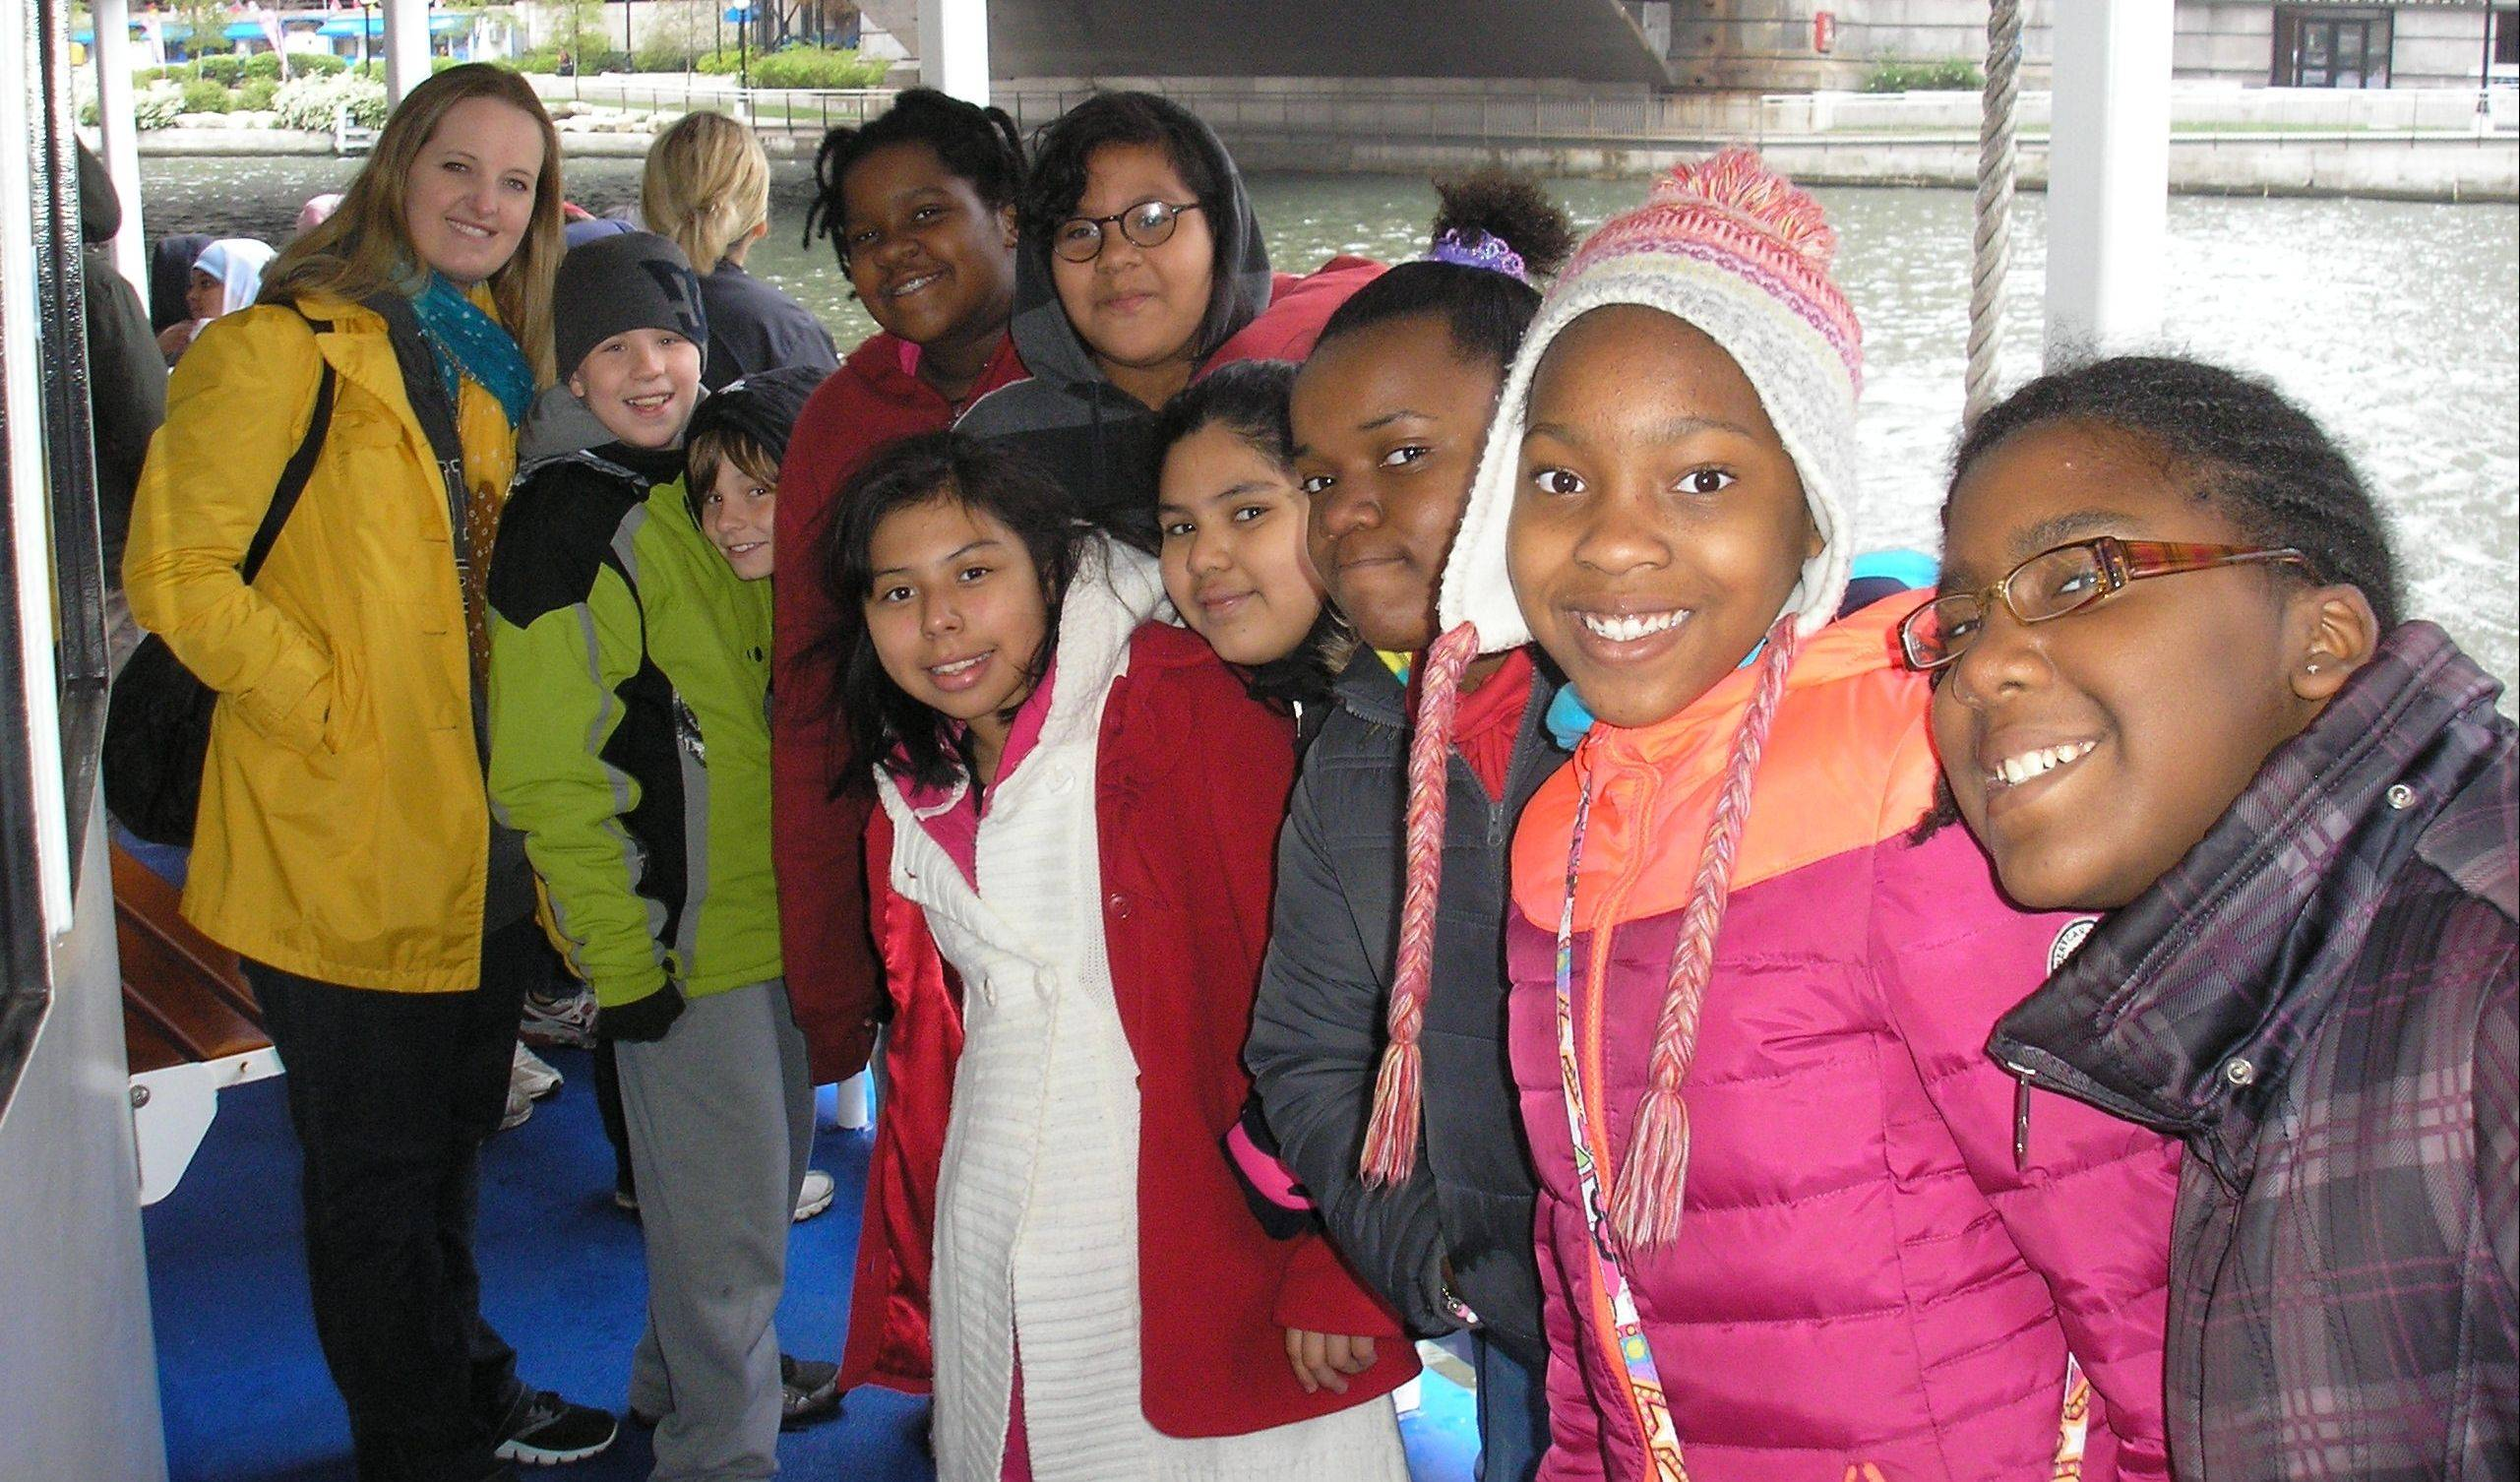 North teachers and fifth-grade students enjoyed an architectural cruise and an art museum tour in Chicago. This field trip culminated the cityscape projects they completed in art class. Pictured, from left, are: Leah Chestovich, Jakub Mitka, Peter Brozda (peeking head), Emily Glover, Jazmin Montesinos, Amarys Santos Cruz, Angeline Velazquez, Valencia Stansberry, Aaja Bass and Brianna Williams.